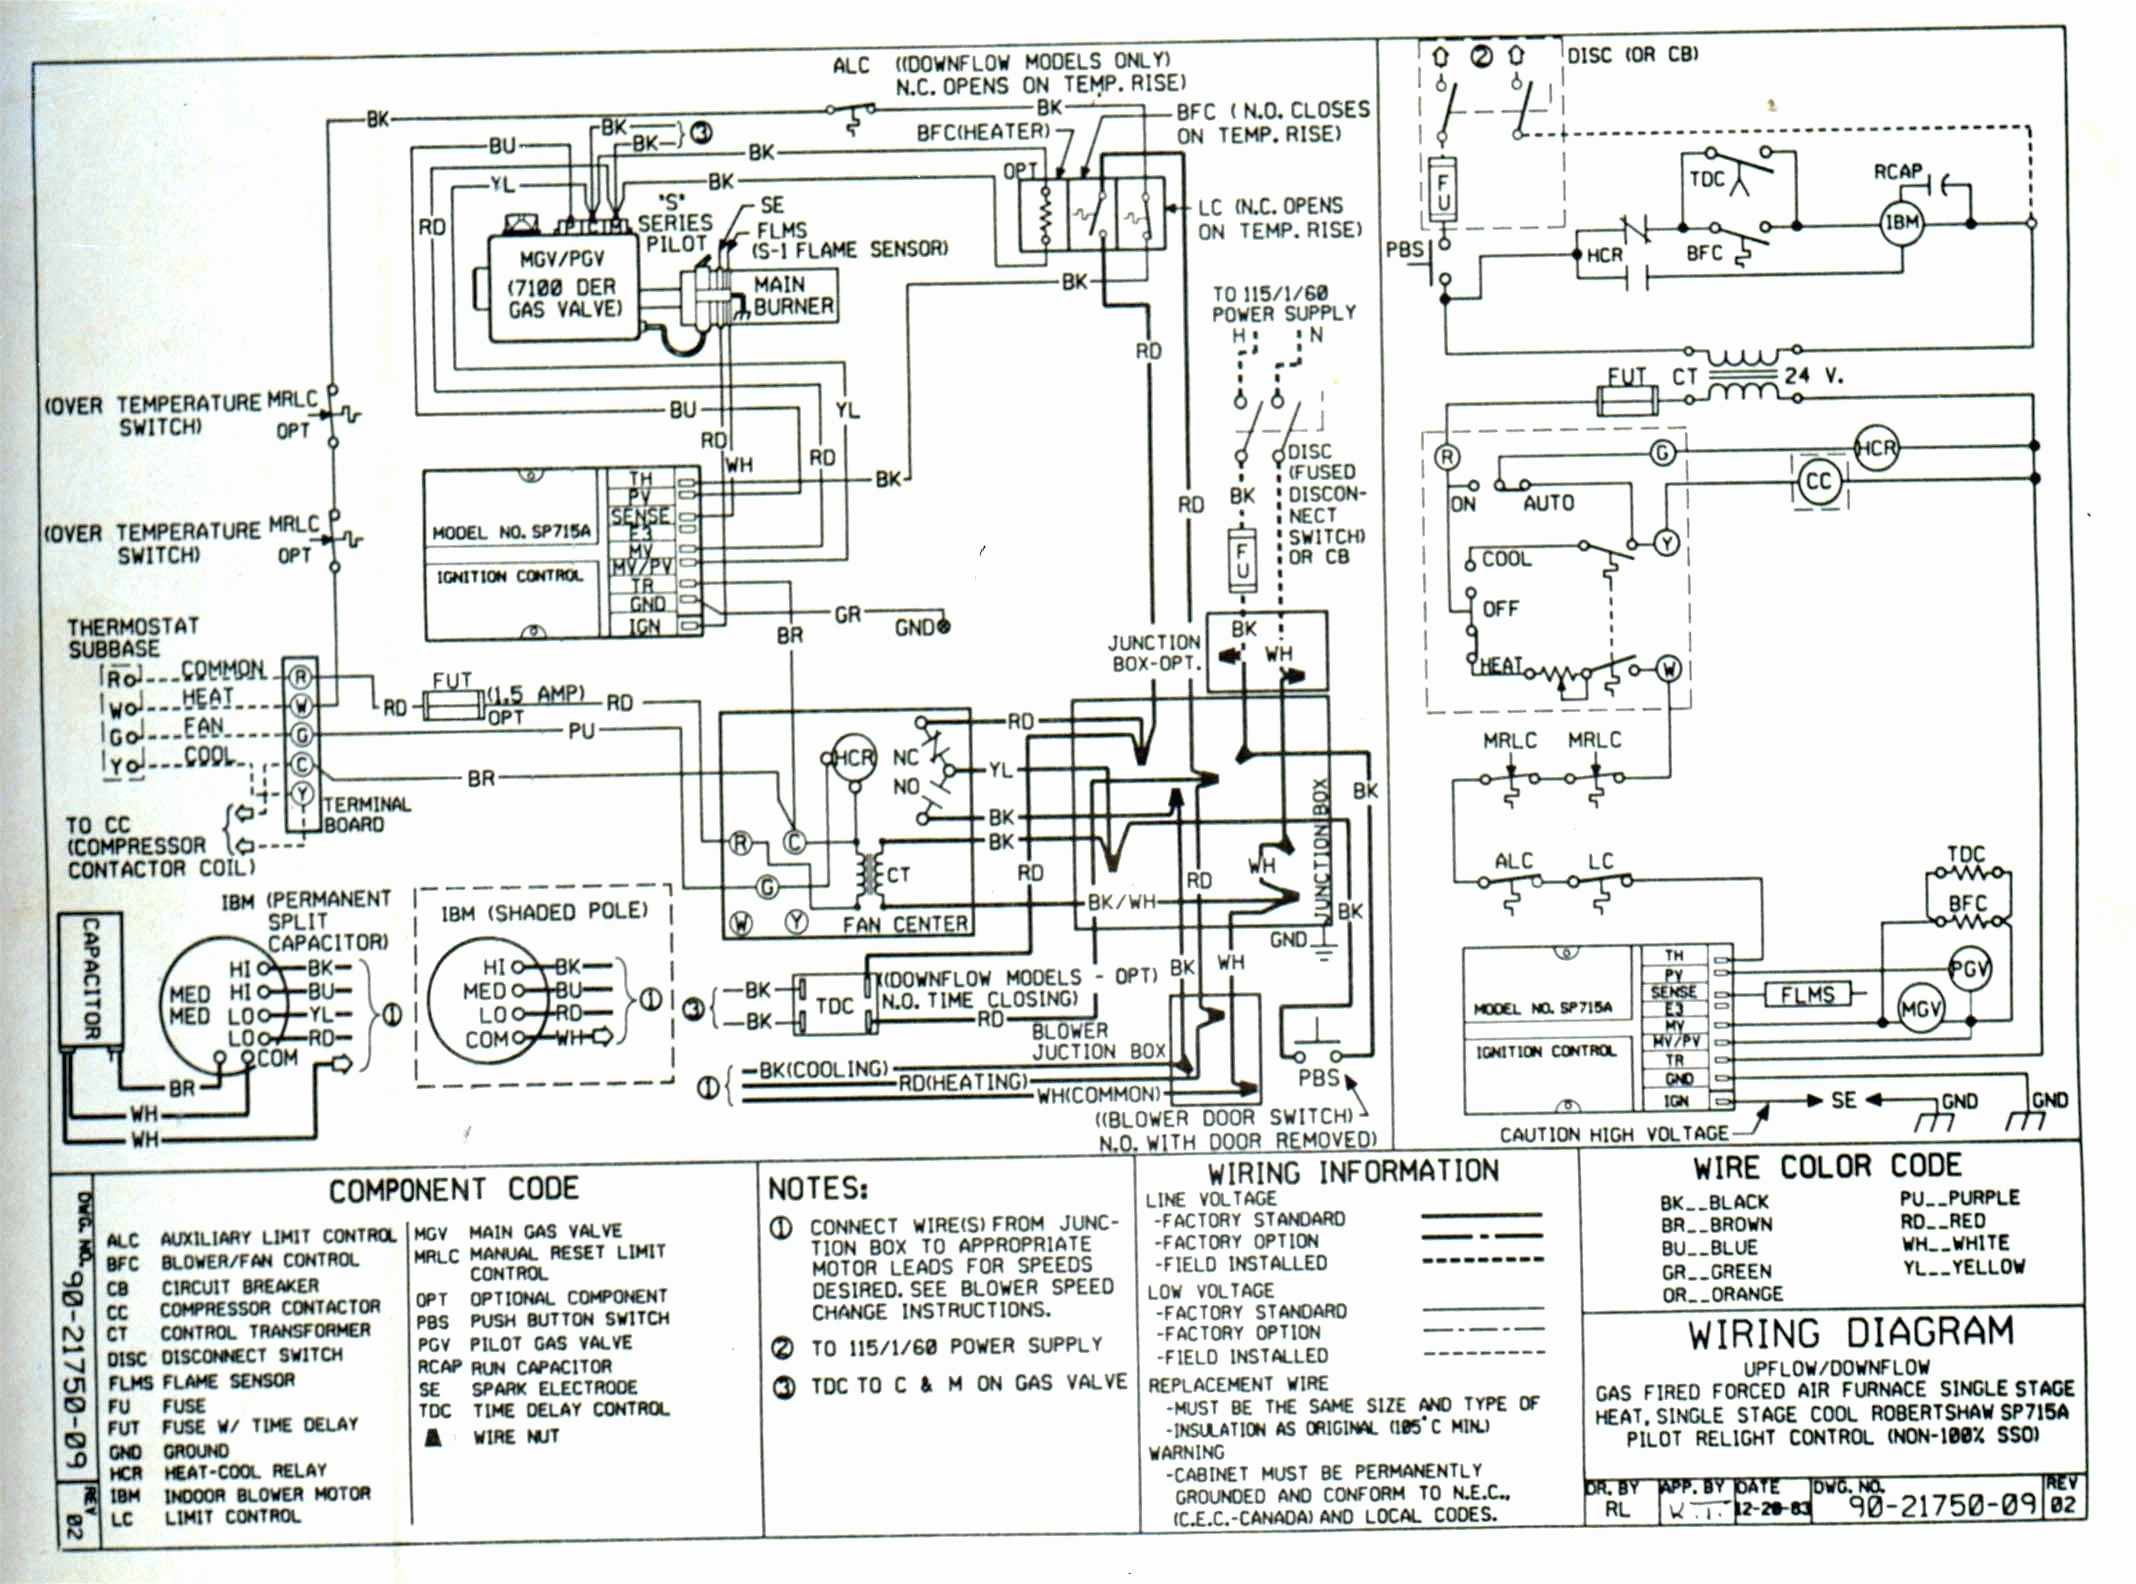 bodine lp600 emergency ballast wiring diagram wiring librarybodine electric dc motor wiring diagram free wiring diagram bodine b50 wiring diagram bodine electric bodine lp600 emergency ballast